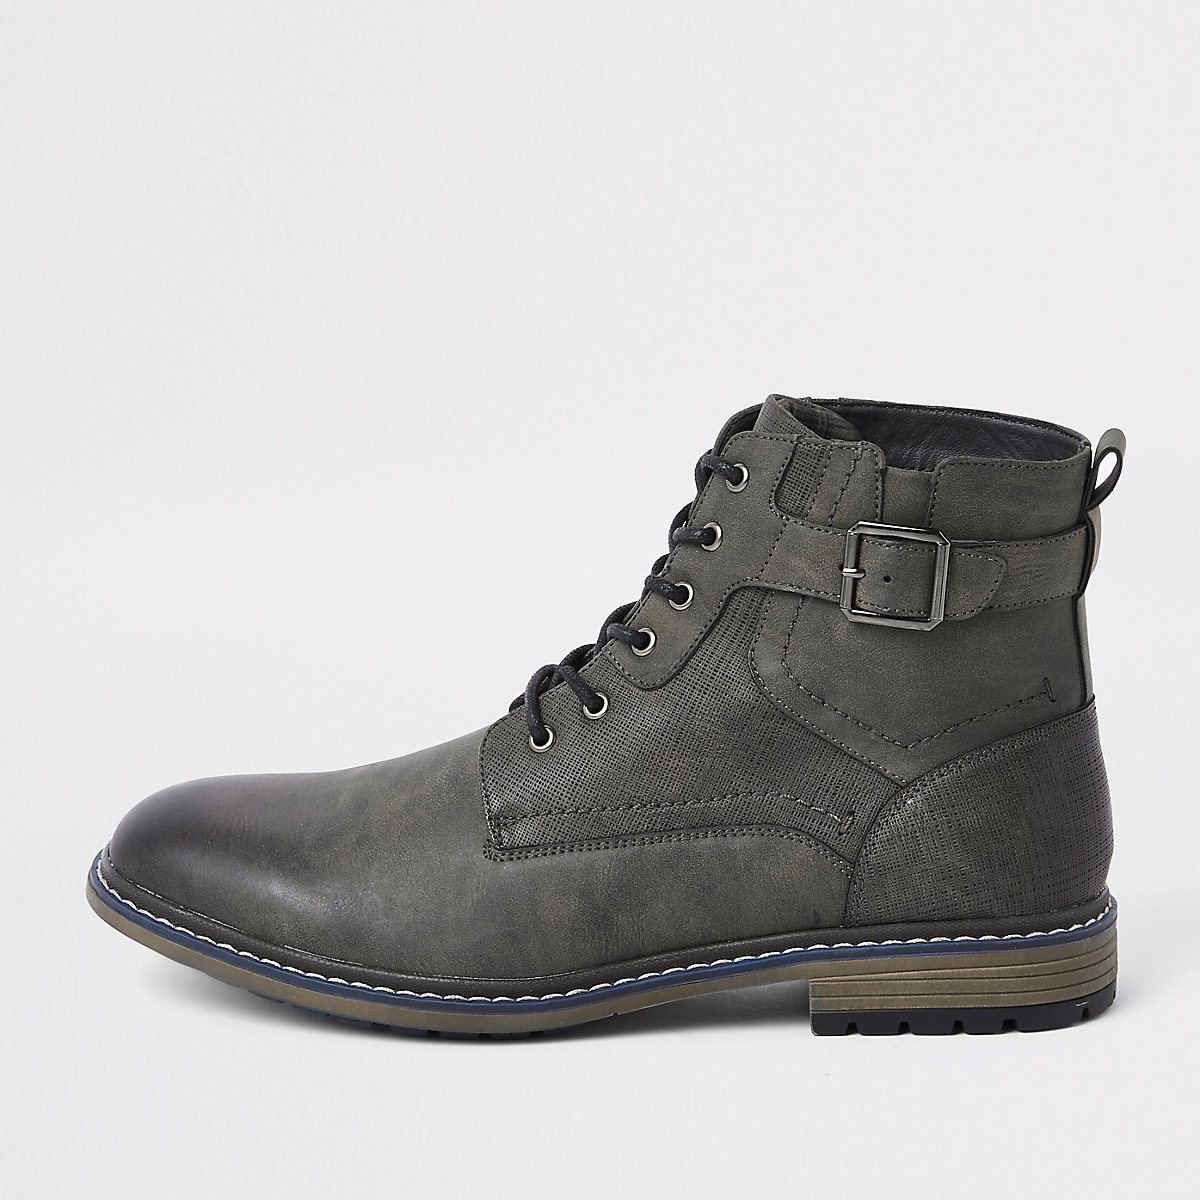 Dark grey lace-up buckle military boots